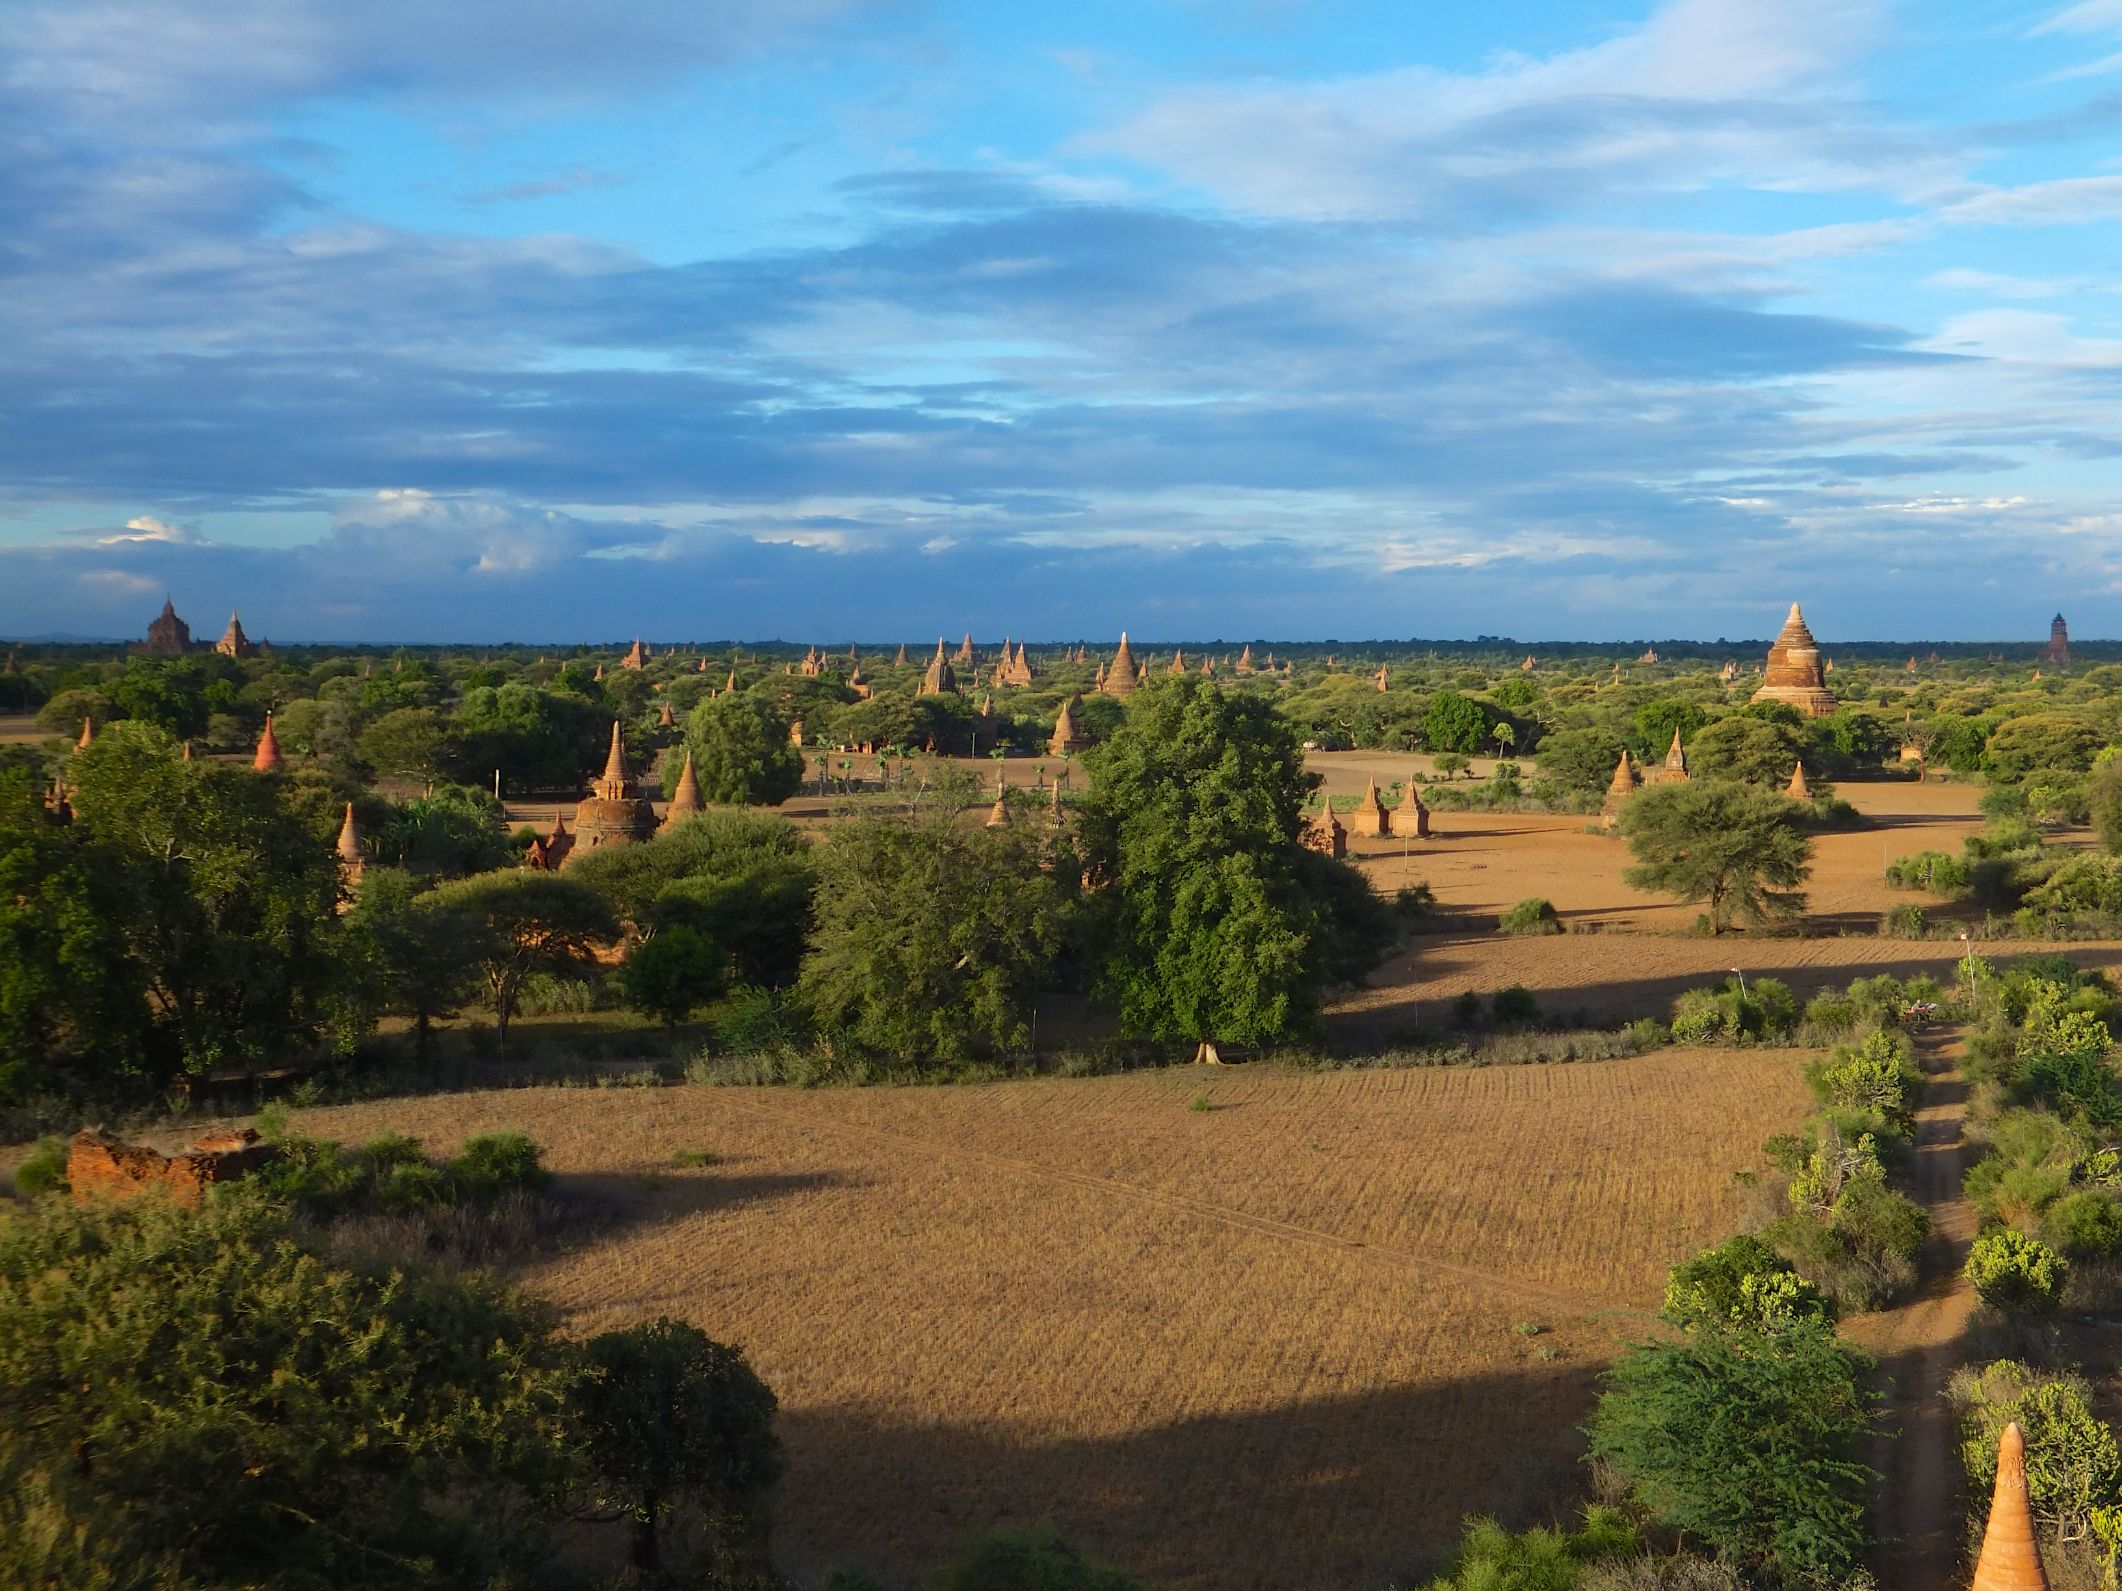 The amazing temples of Bagan